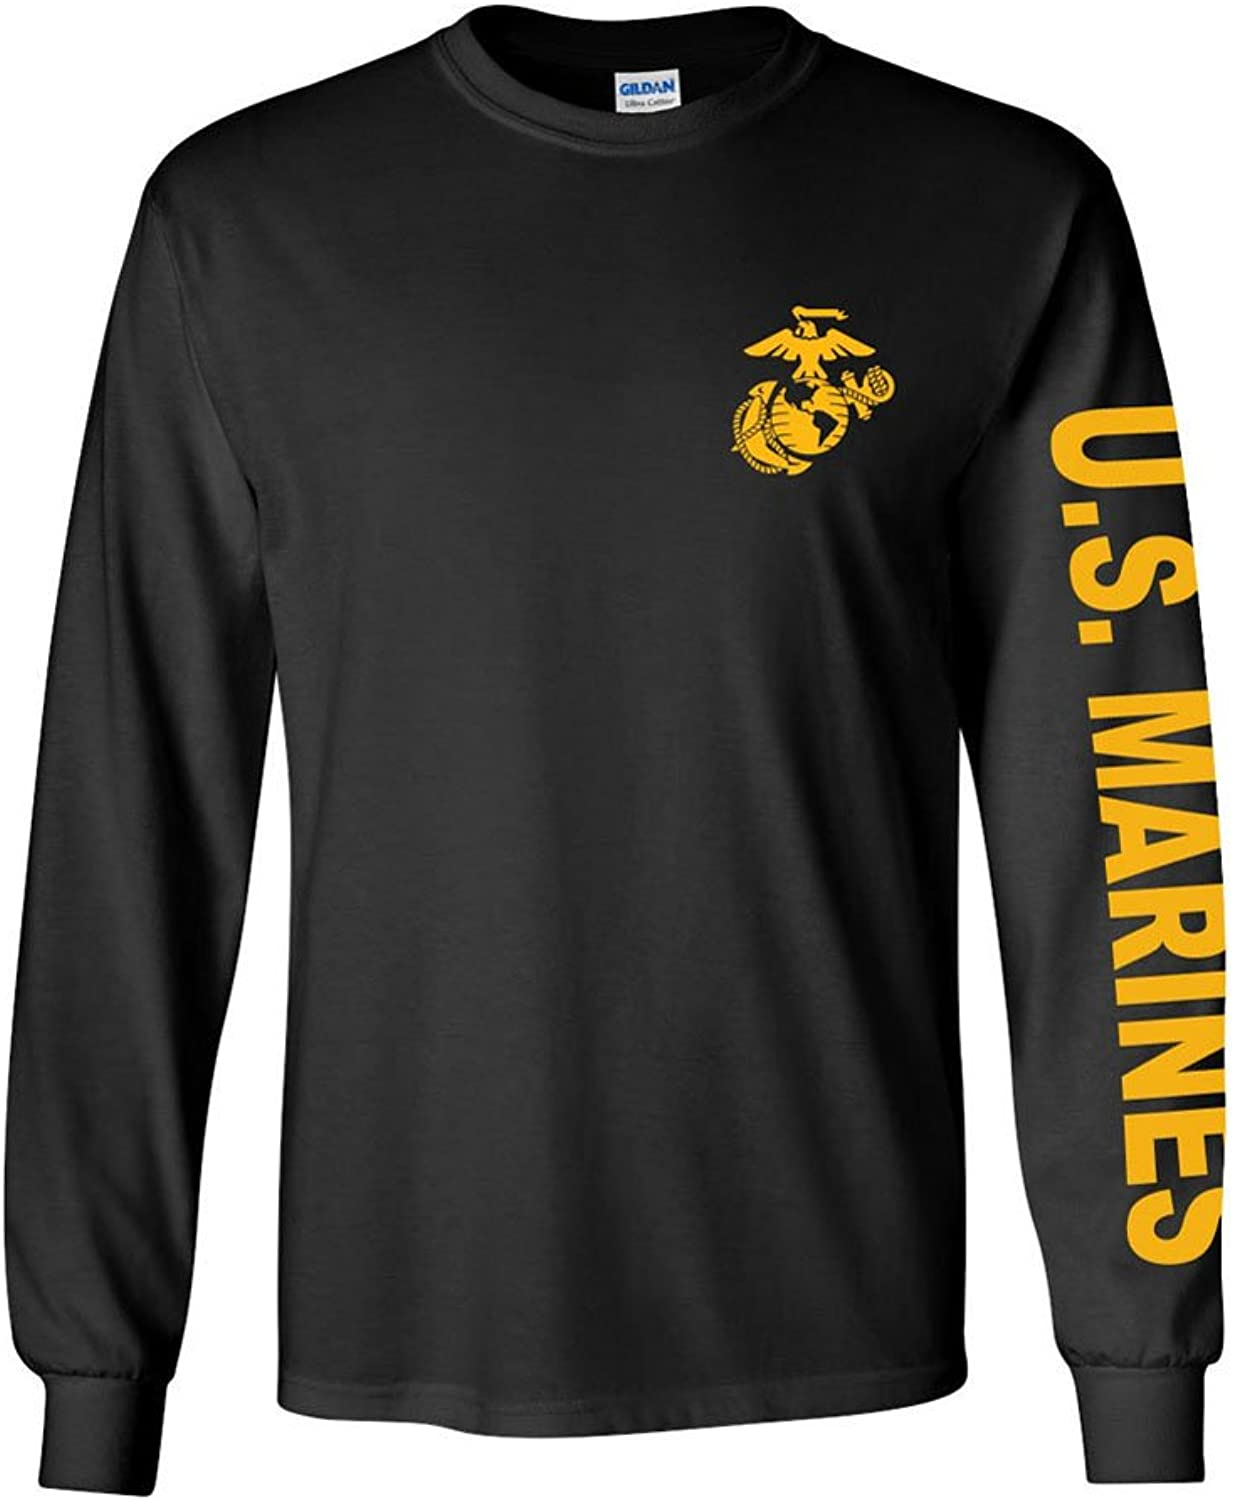 c0ce78f0e Armed Forces Depot U.S. U.S. U.S. Marine Corps Long Sleeve Tshirt. Black Or  Sports Grey. Made in USA baba3d